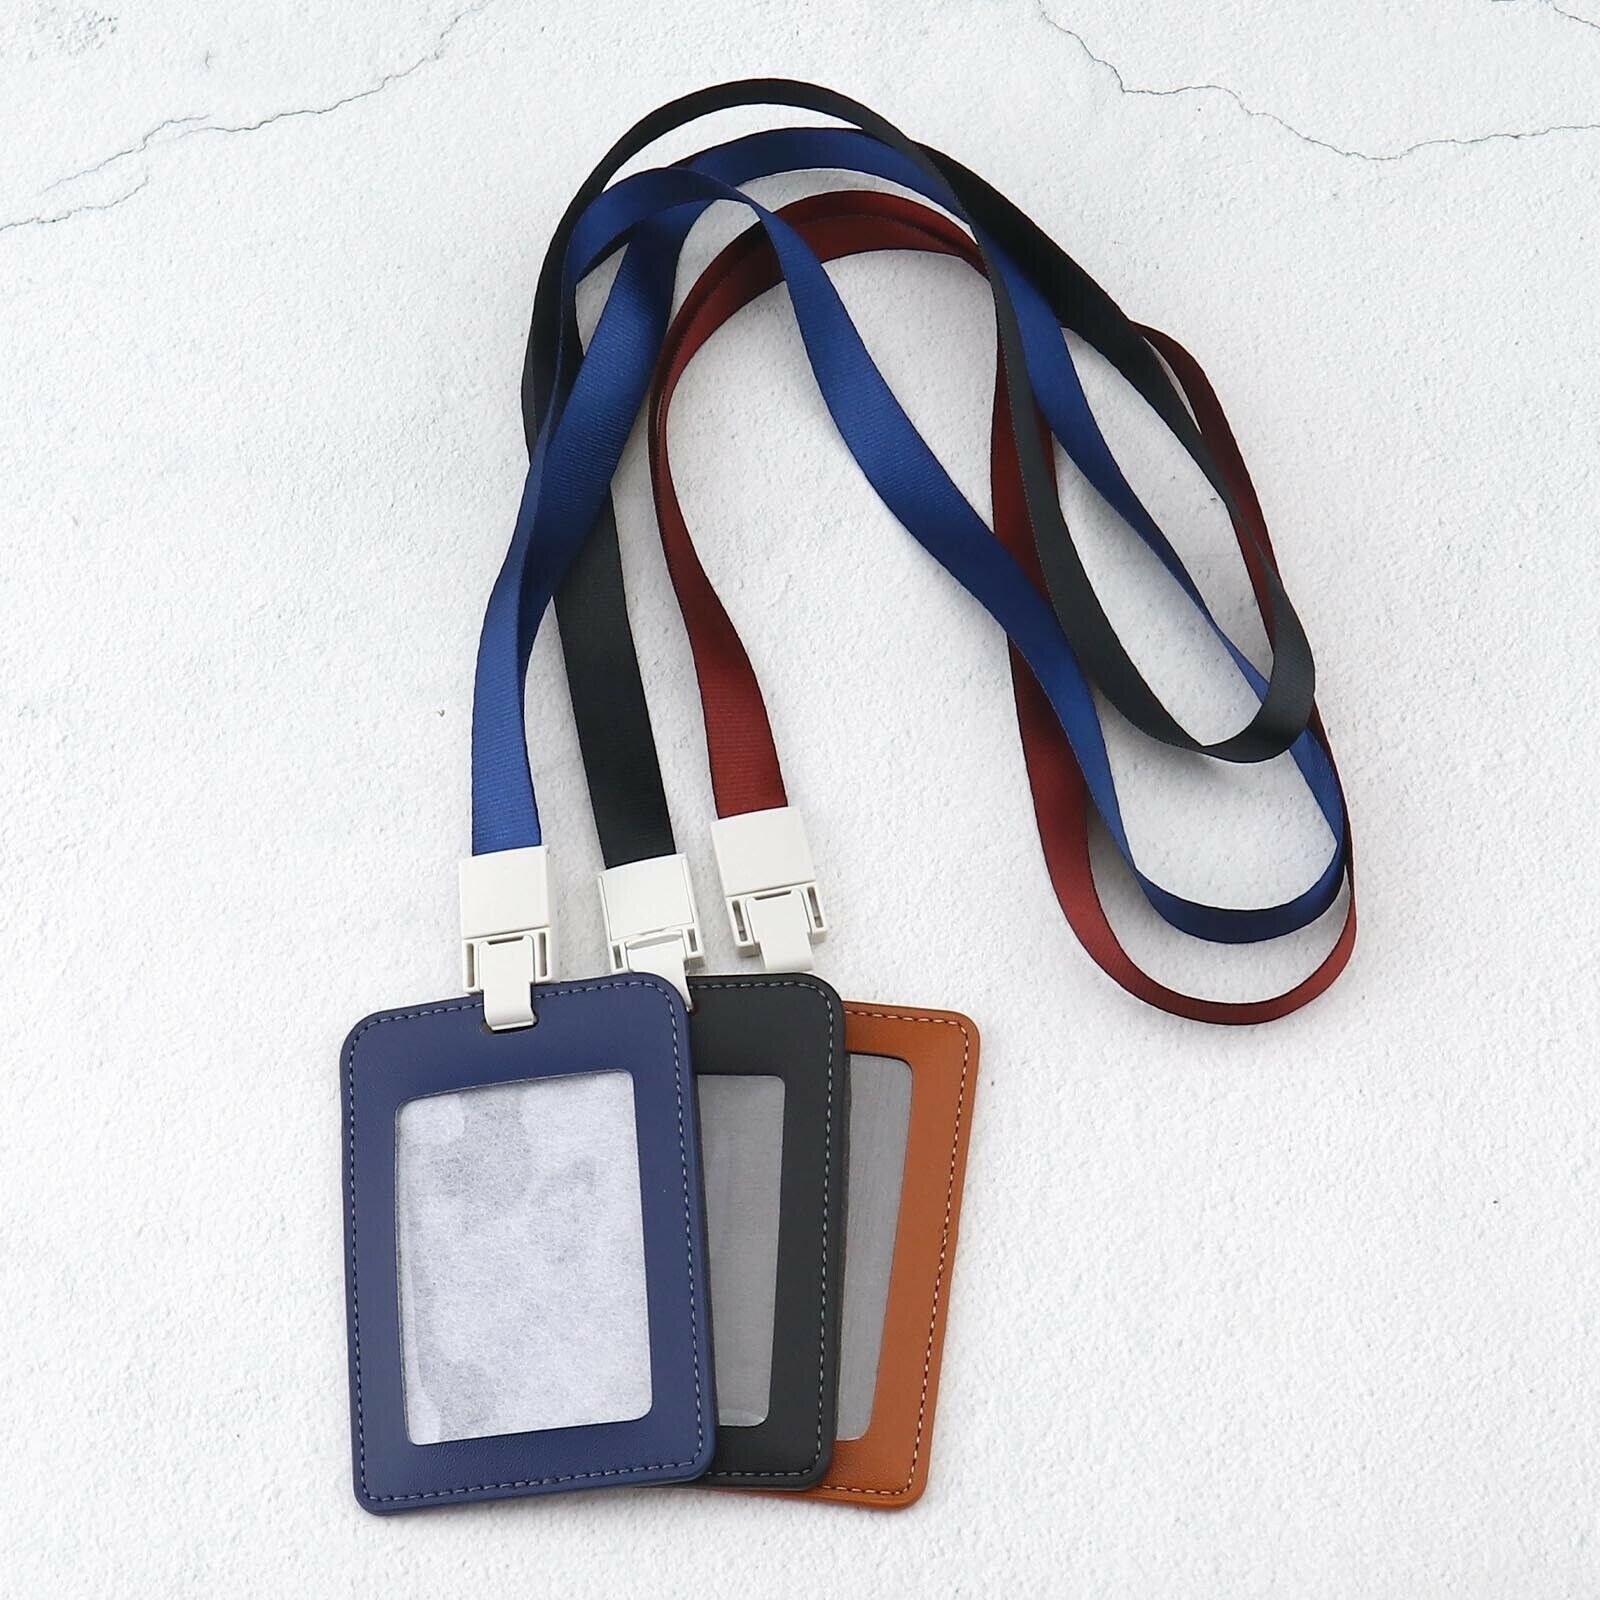 3pcs PU Leather Badge Holder Bus ID Student Card Holder with Clear Window